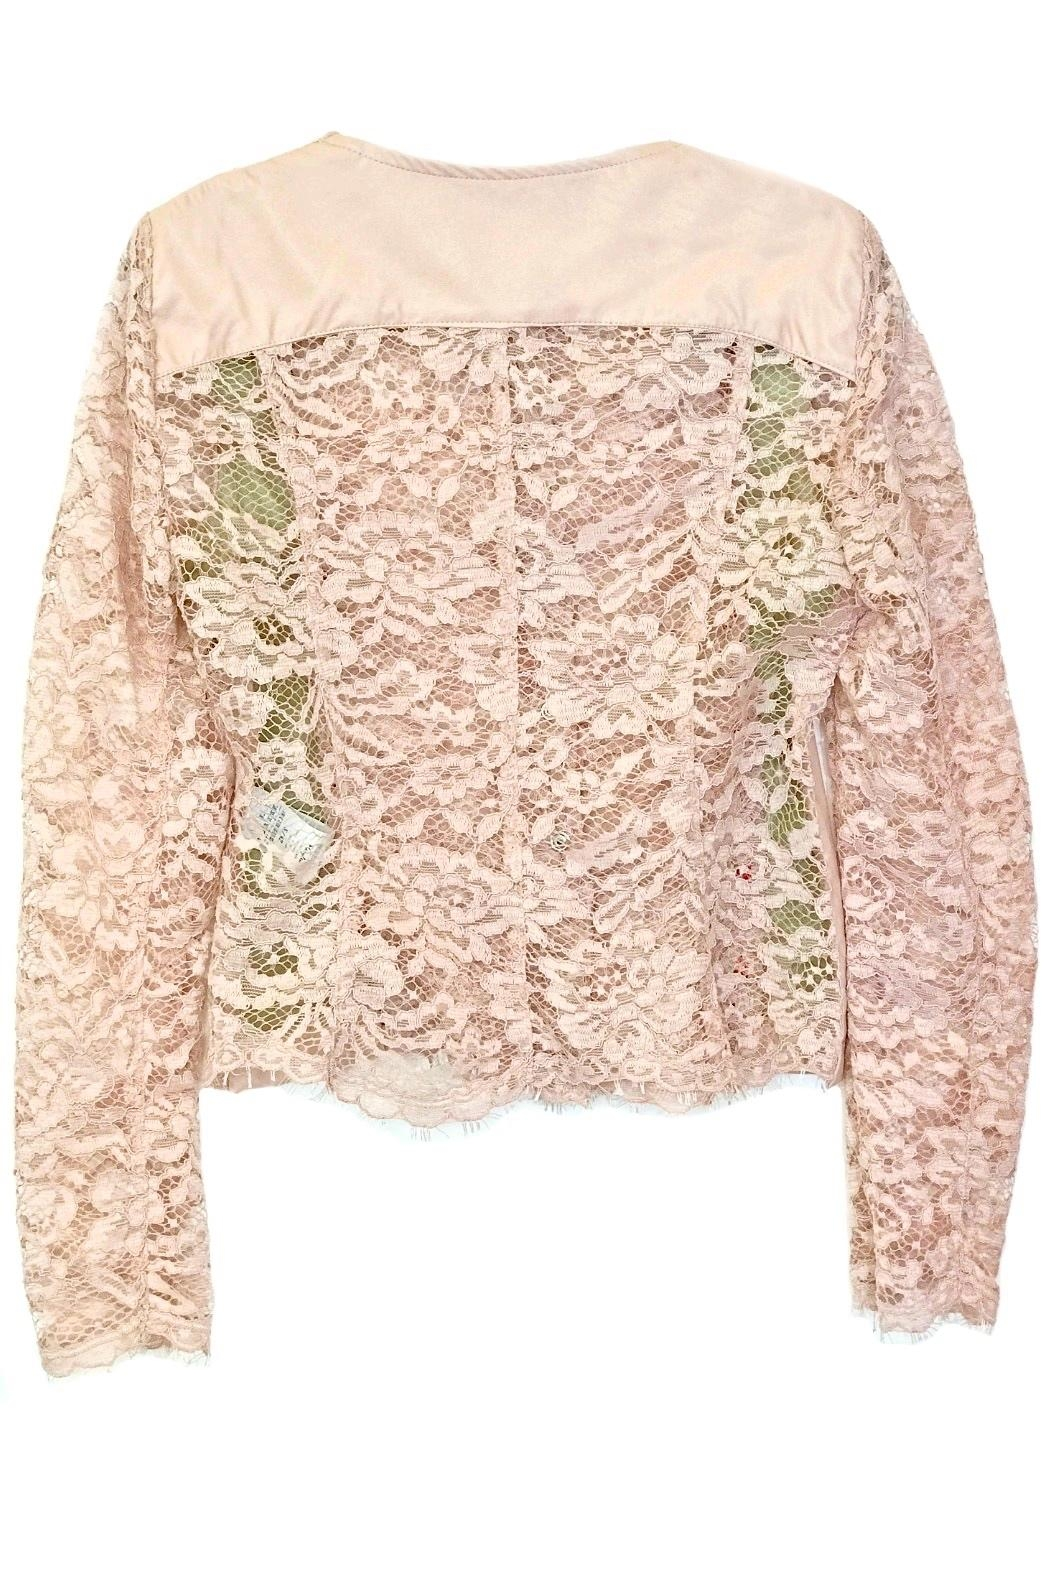 Maryley Pink Lace Jacket - Front Full Image